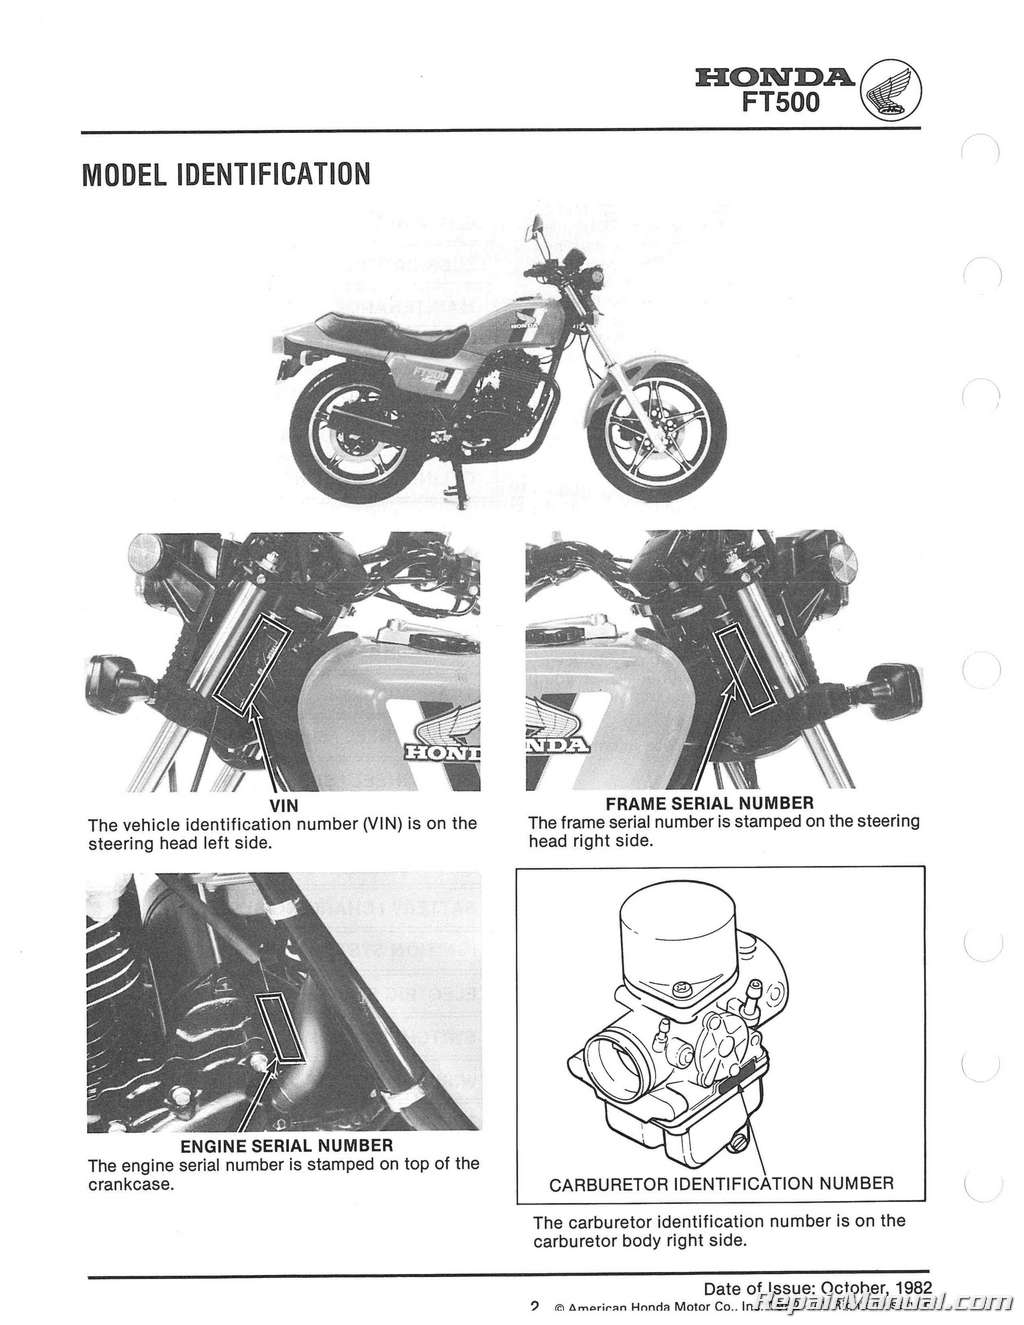 1982 1983 honda ft500 ascot motorcycle service manual rh repairmanual com 1985 honda shadow vt500 service manual honda vt 500 service manual pdf